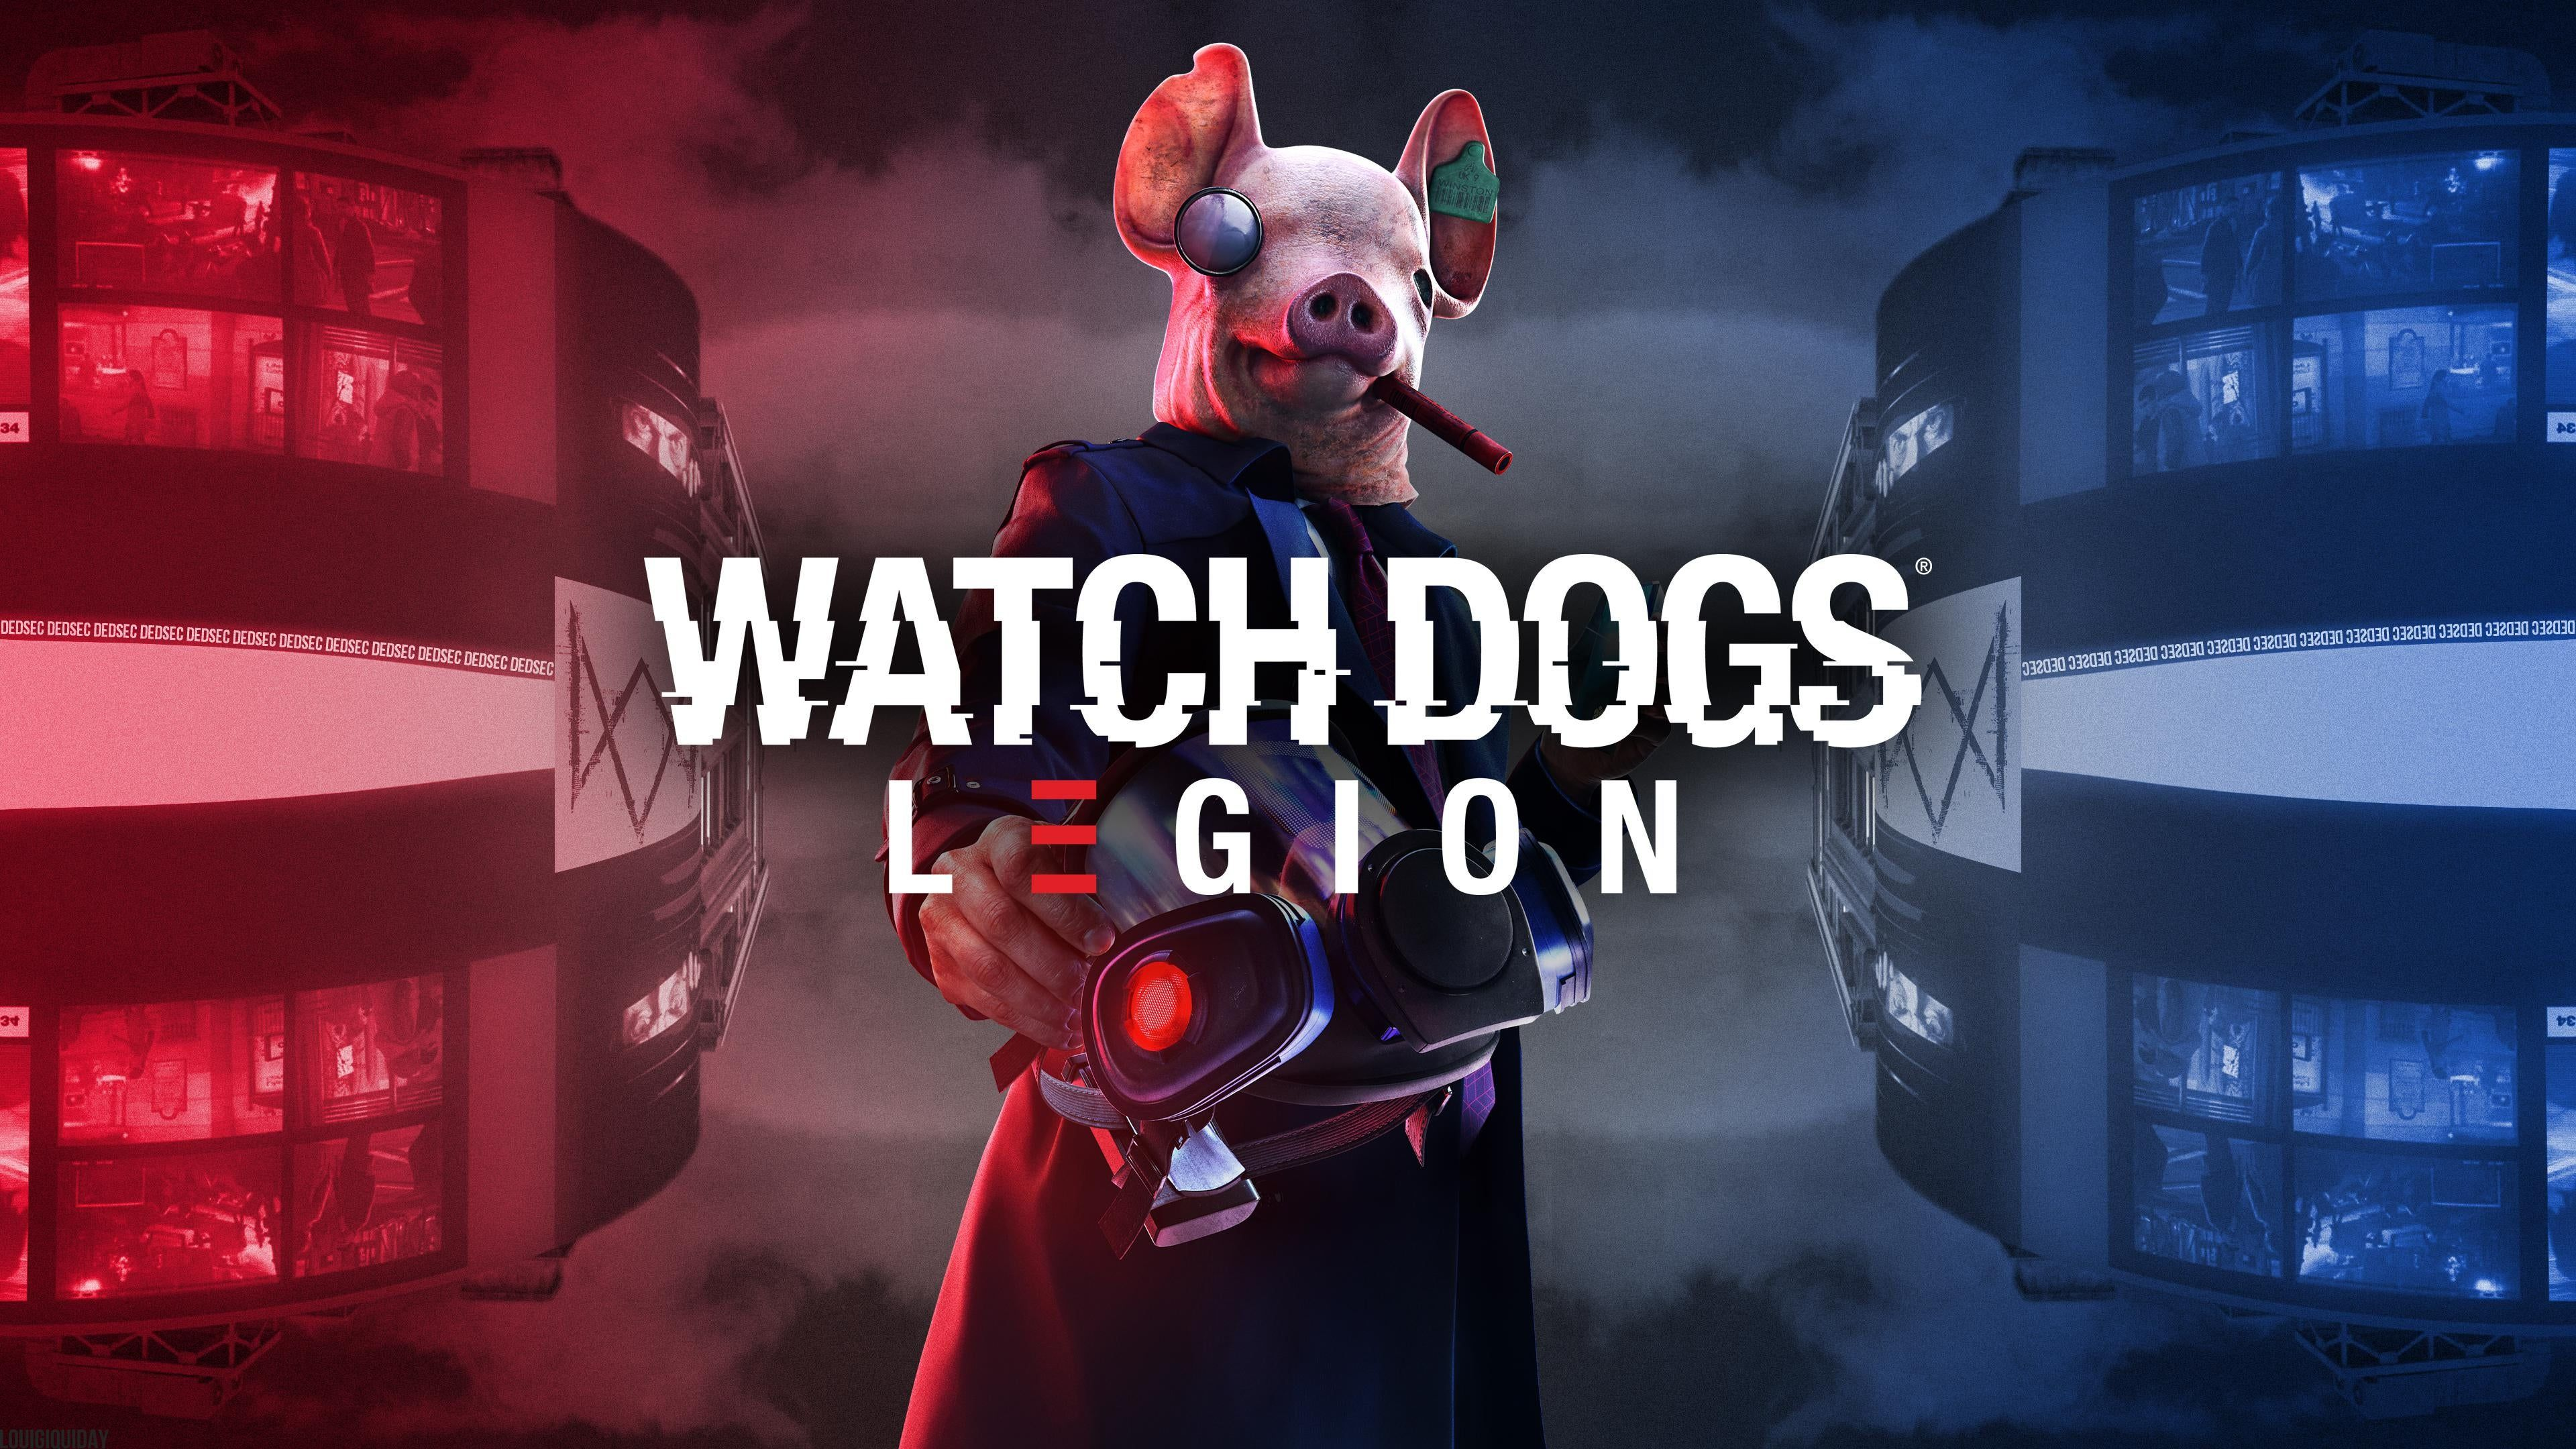 Watch Dogs Legion 2020 Wallpapers - Wallpaper Cave